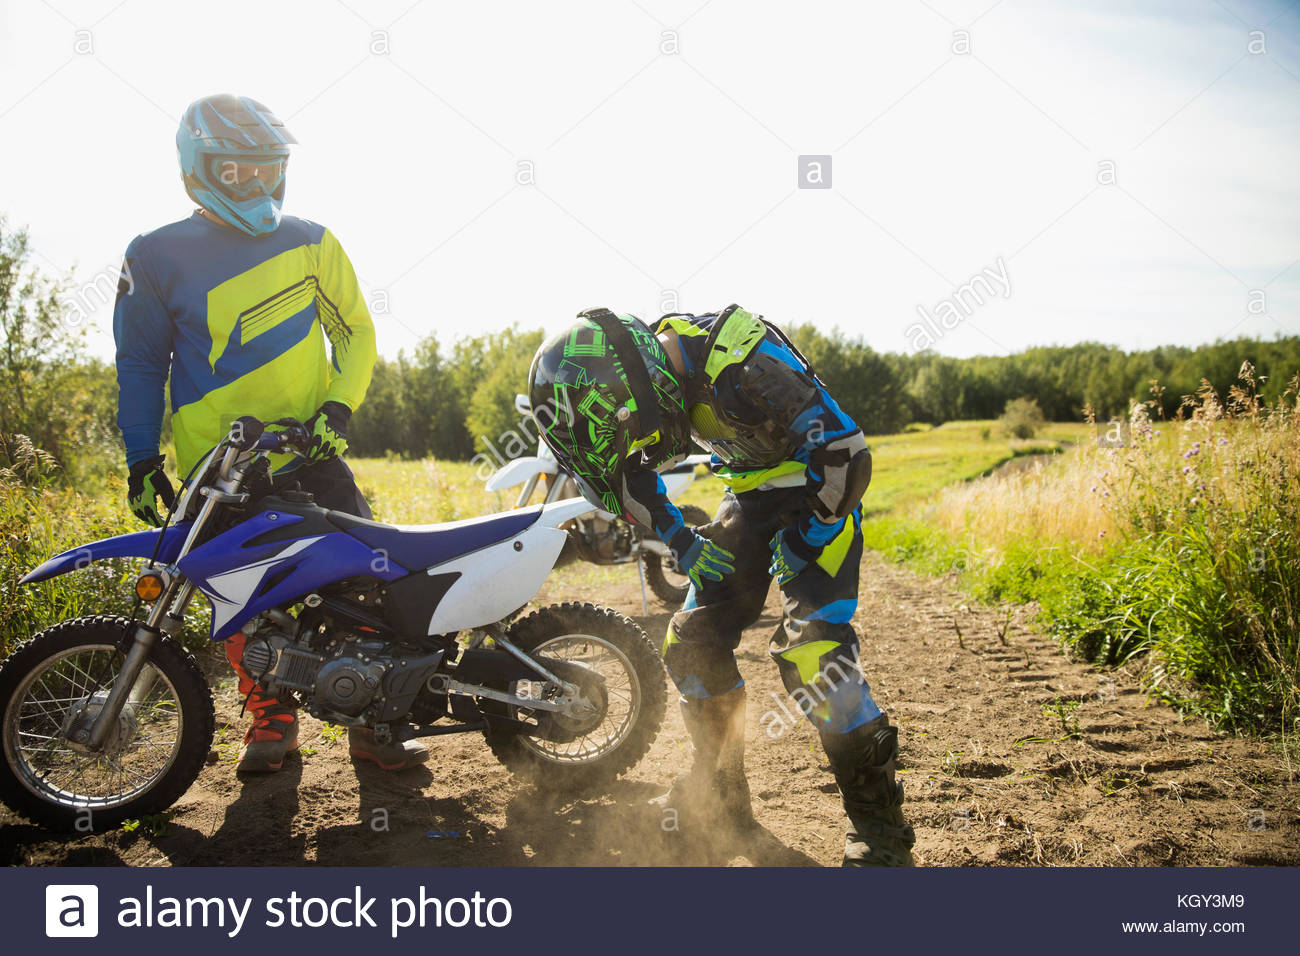 Father helping daughter with motorbike on sunny rural dirt road - Stock Image